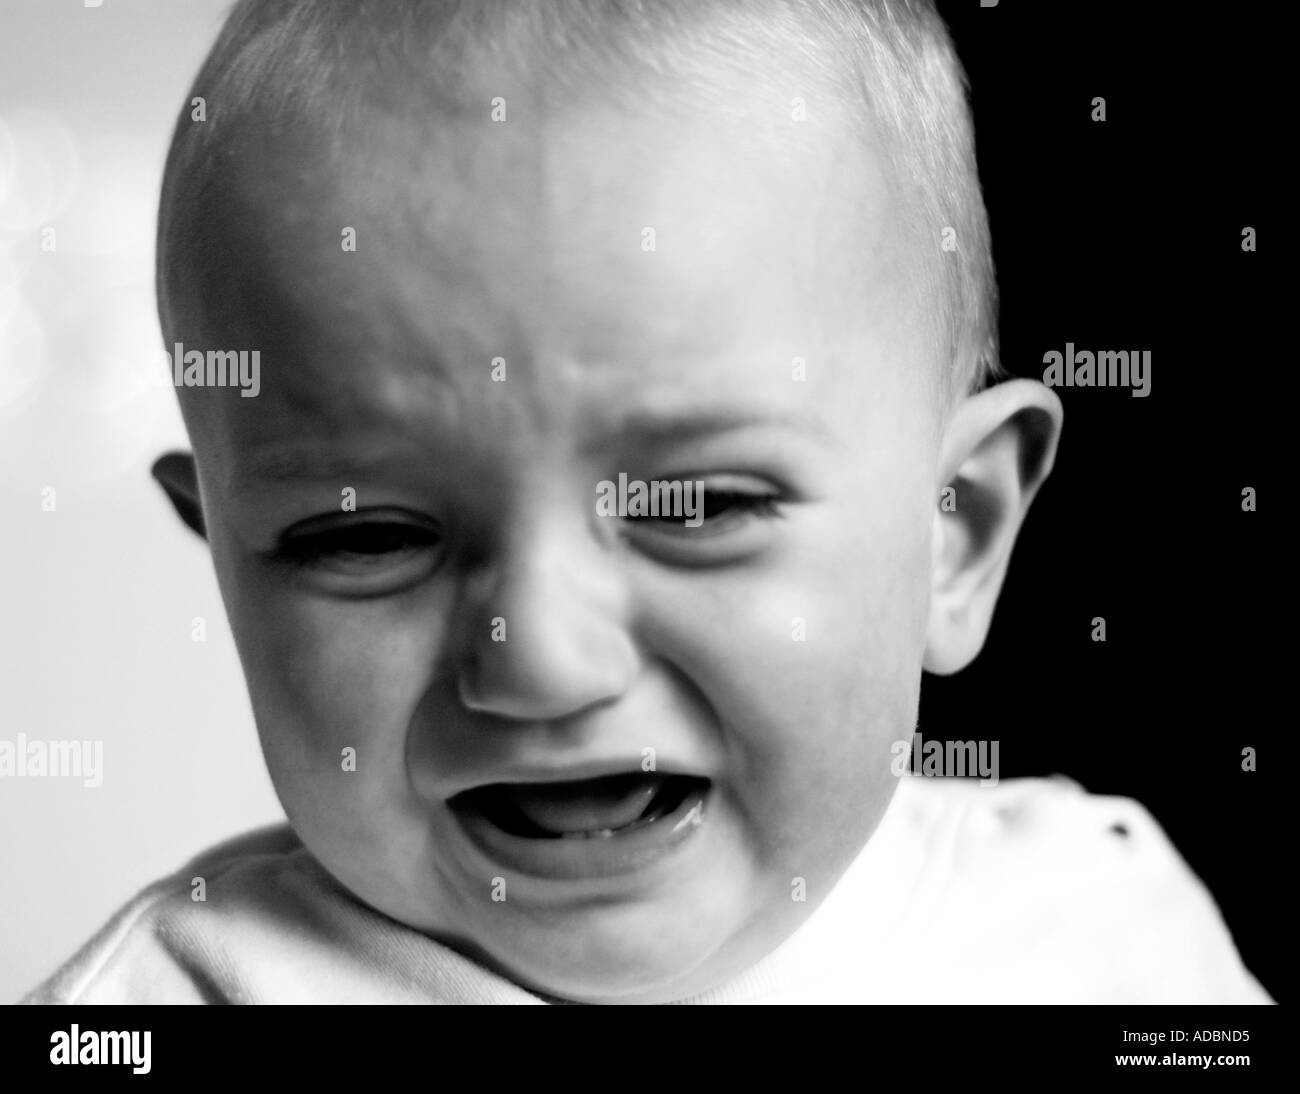 Baby boy crying in mono - Stock Image